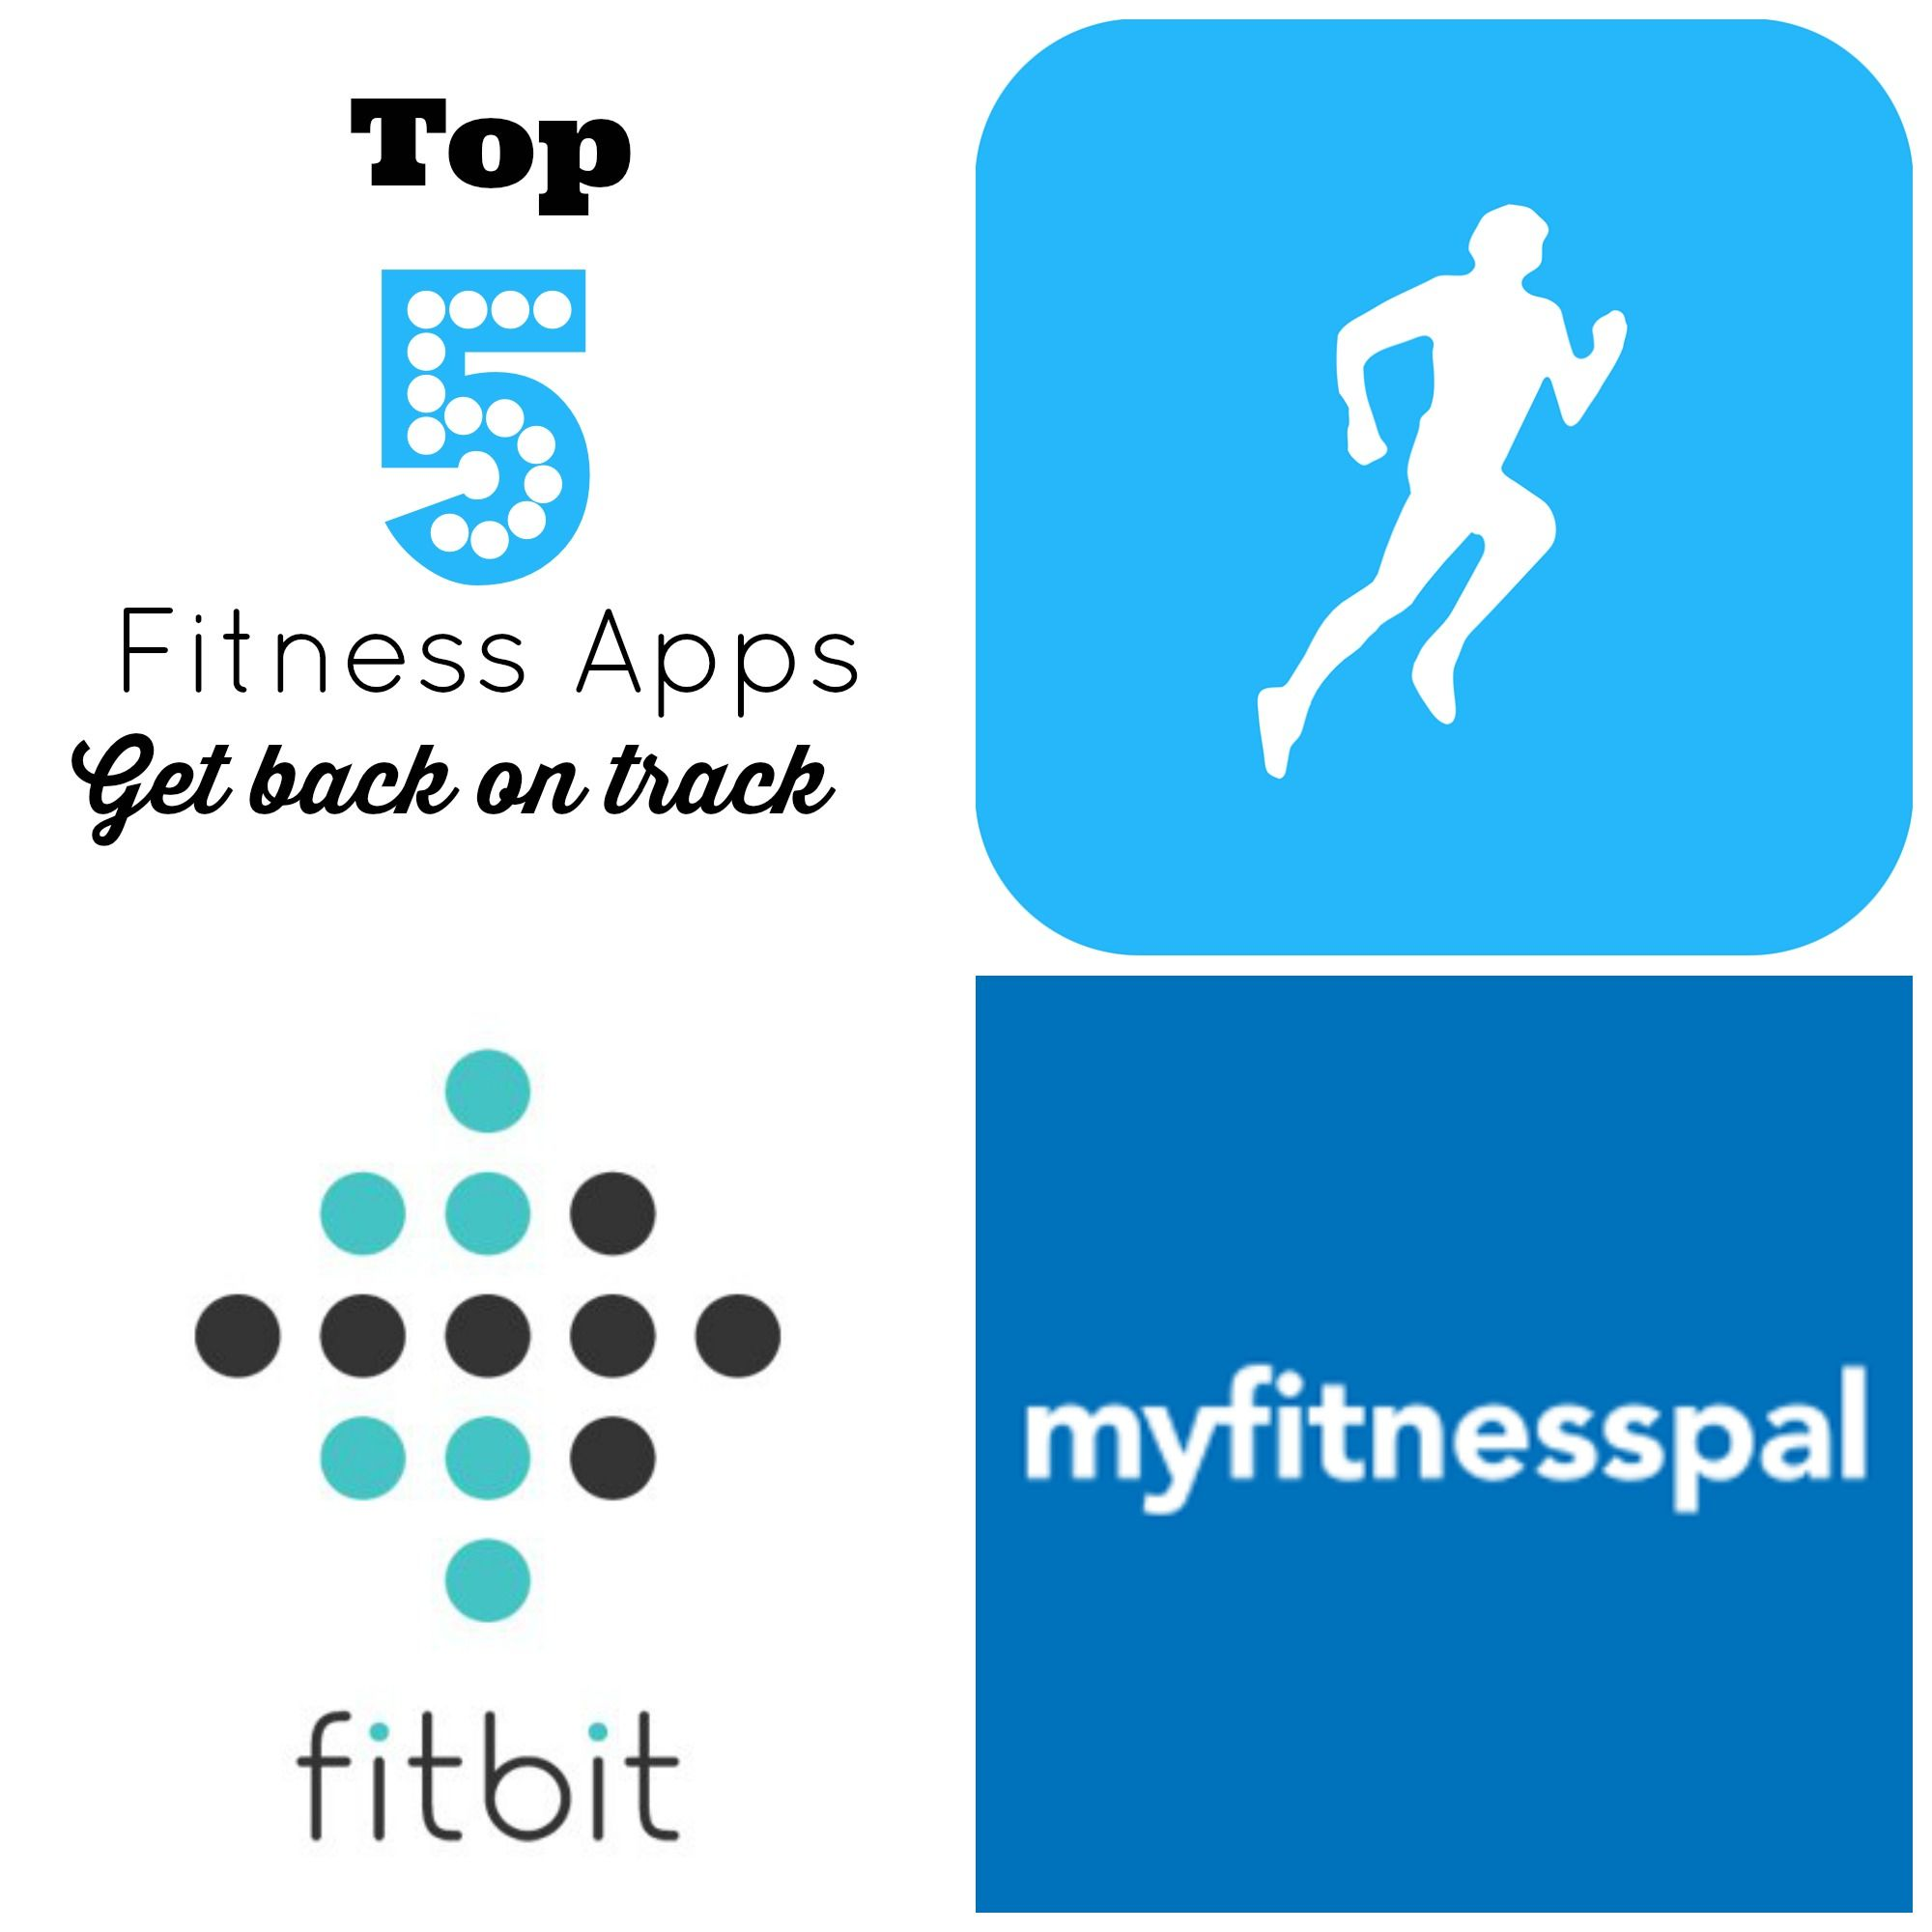 Best Fitness Apps Workout Apps Fun Workouts Top Fitness Apps